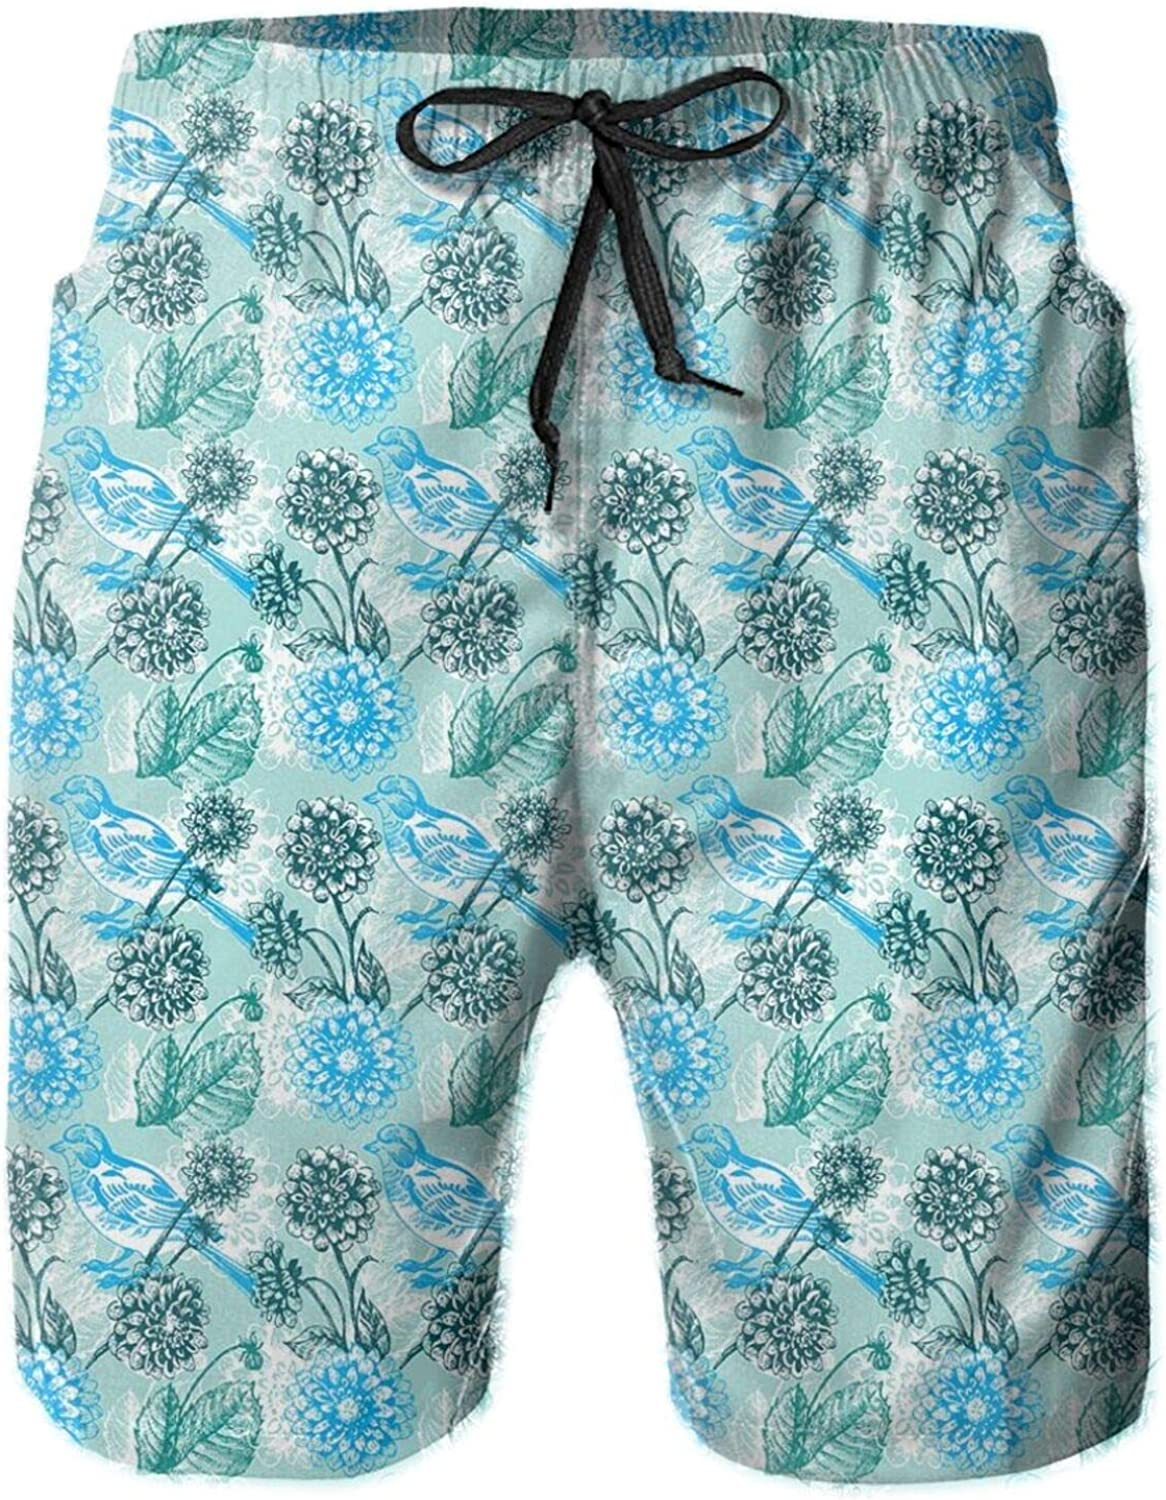 Springtime Illustration with Blooming Flowers and Sparrows Abstract Nature Art Mens Swim Trucks Shorts with Mesh Lining,M